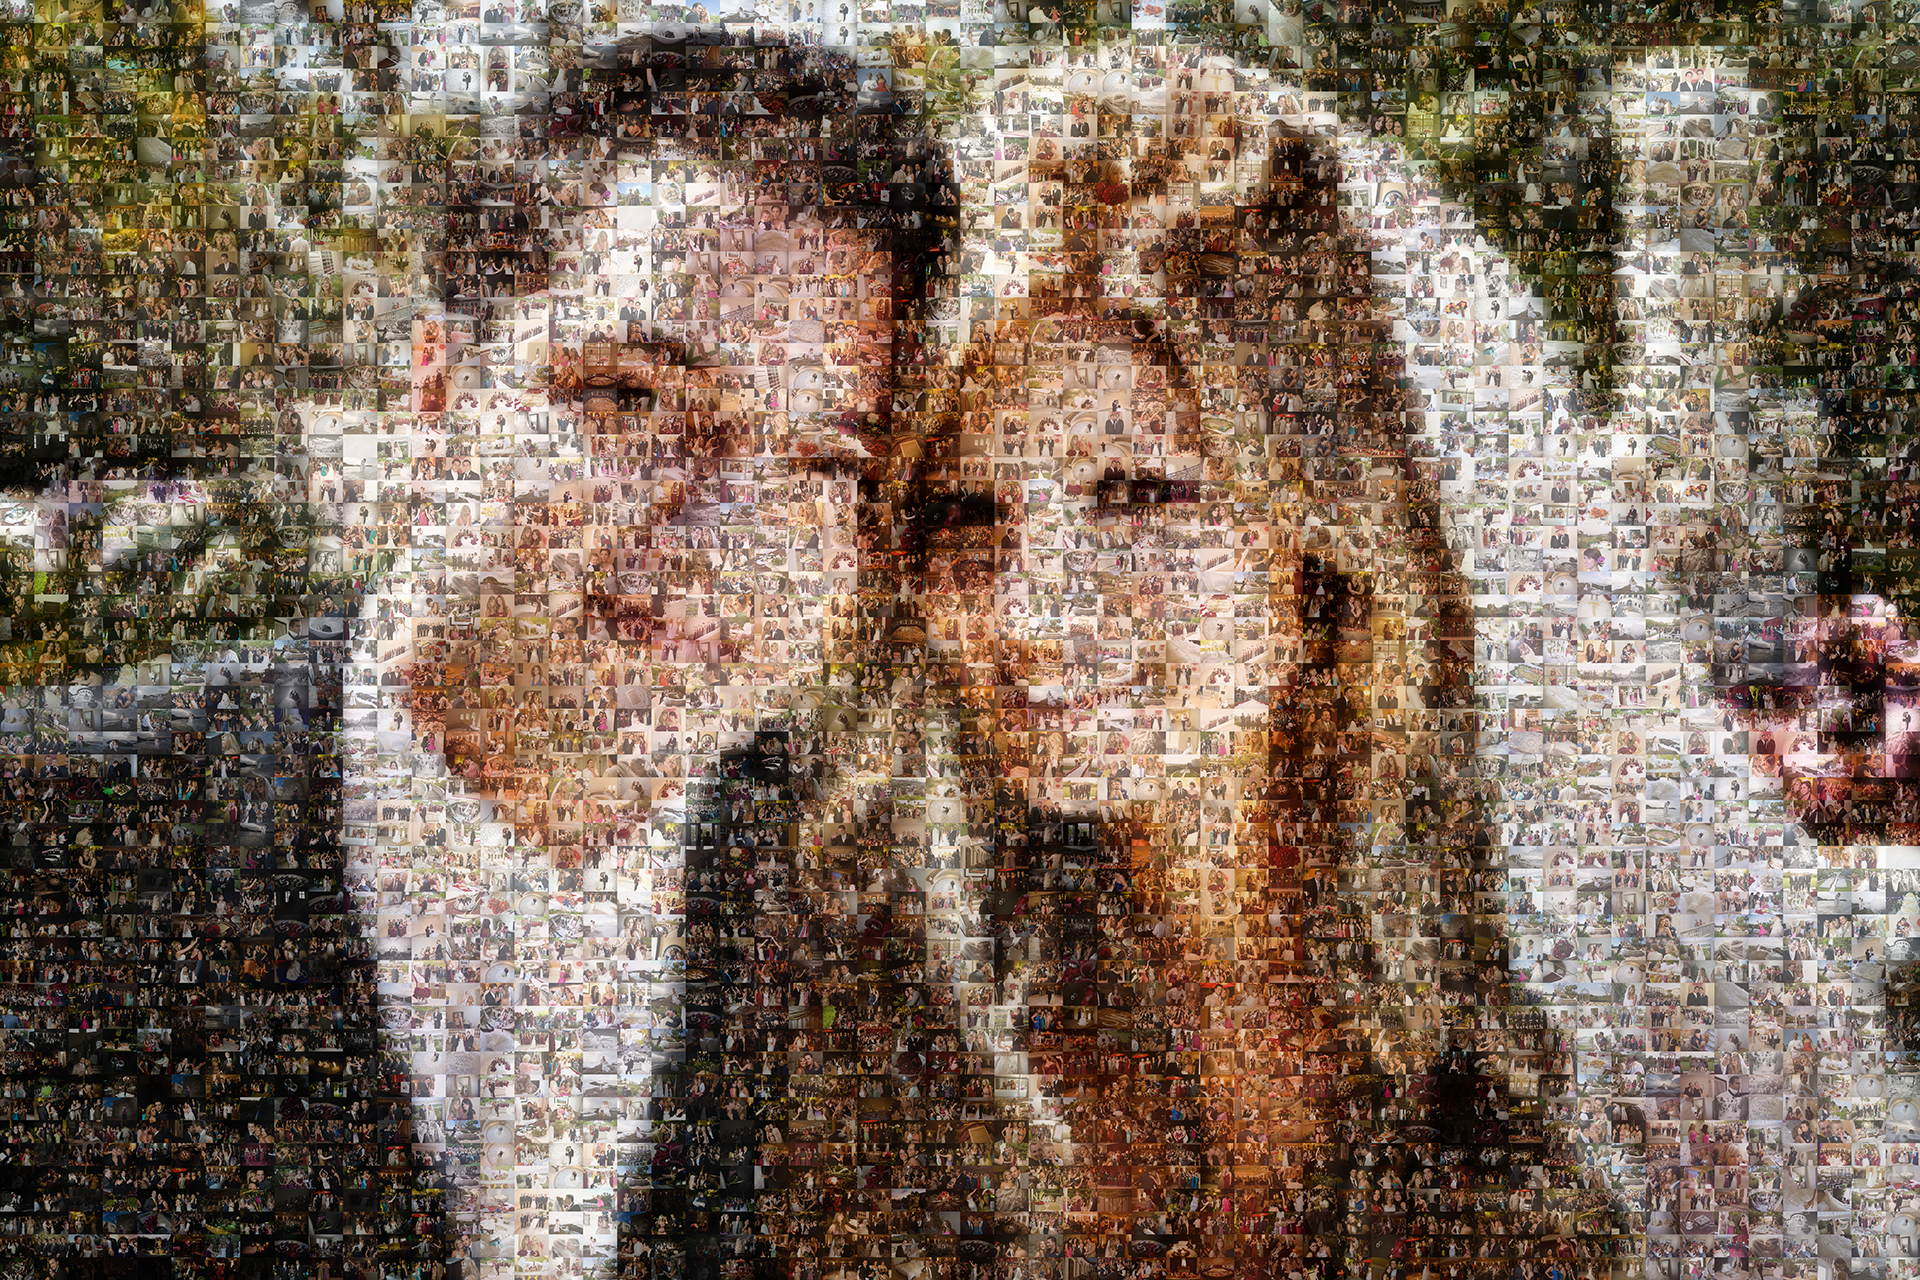 photo mosaic created using 1200 photographer selected photos from their wedding celebration